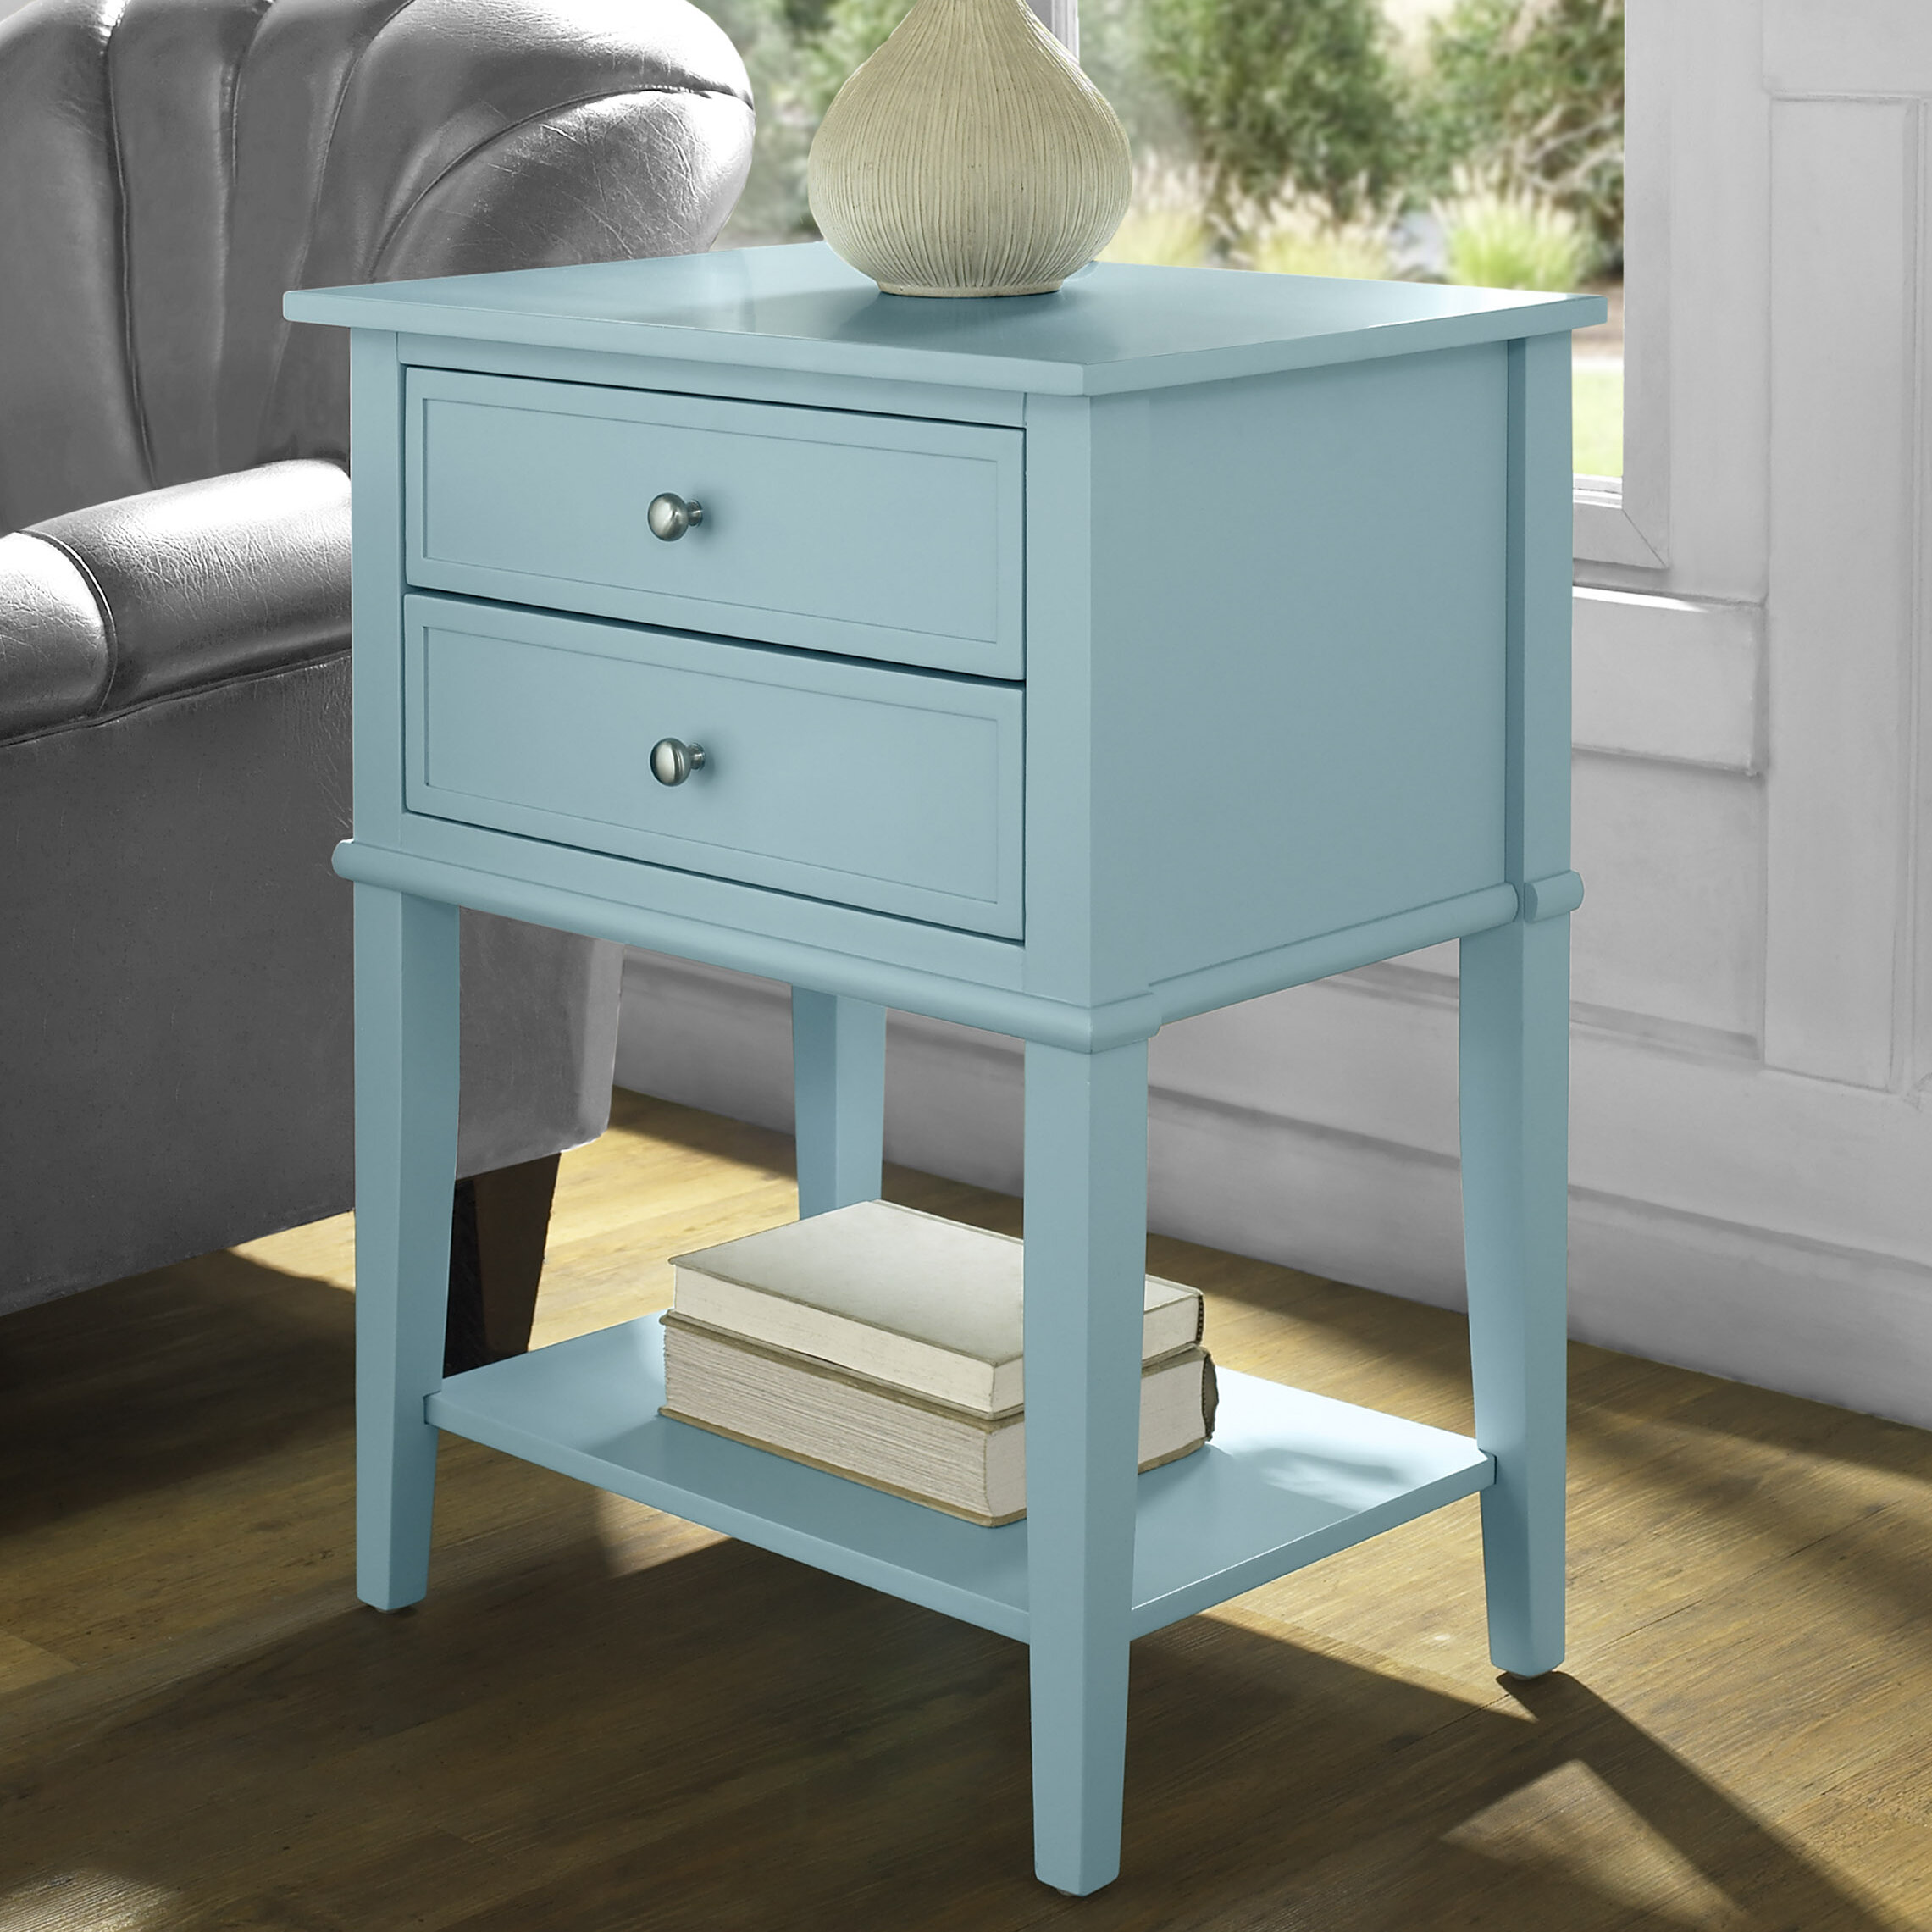 Blue Nightstands Free Shipping Over 35 Wayfair